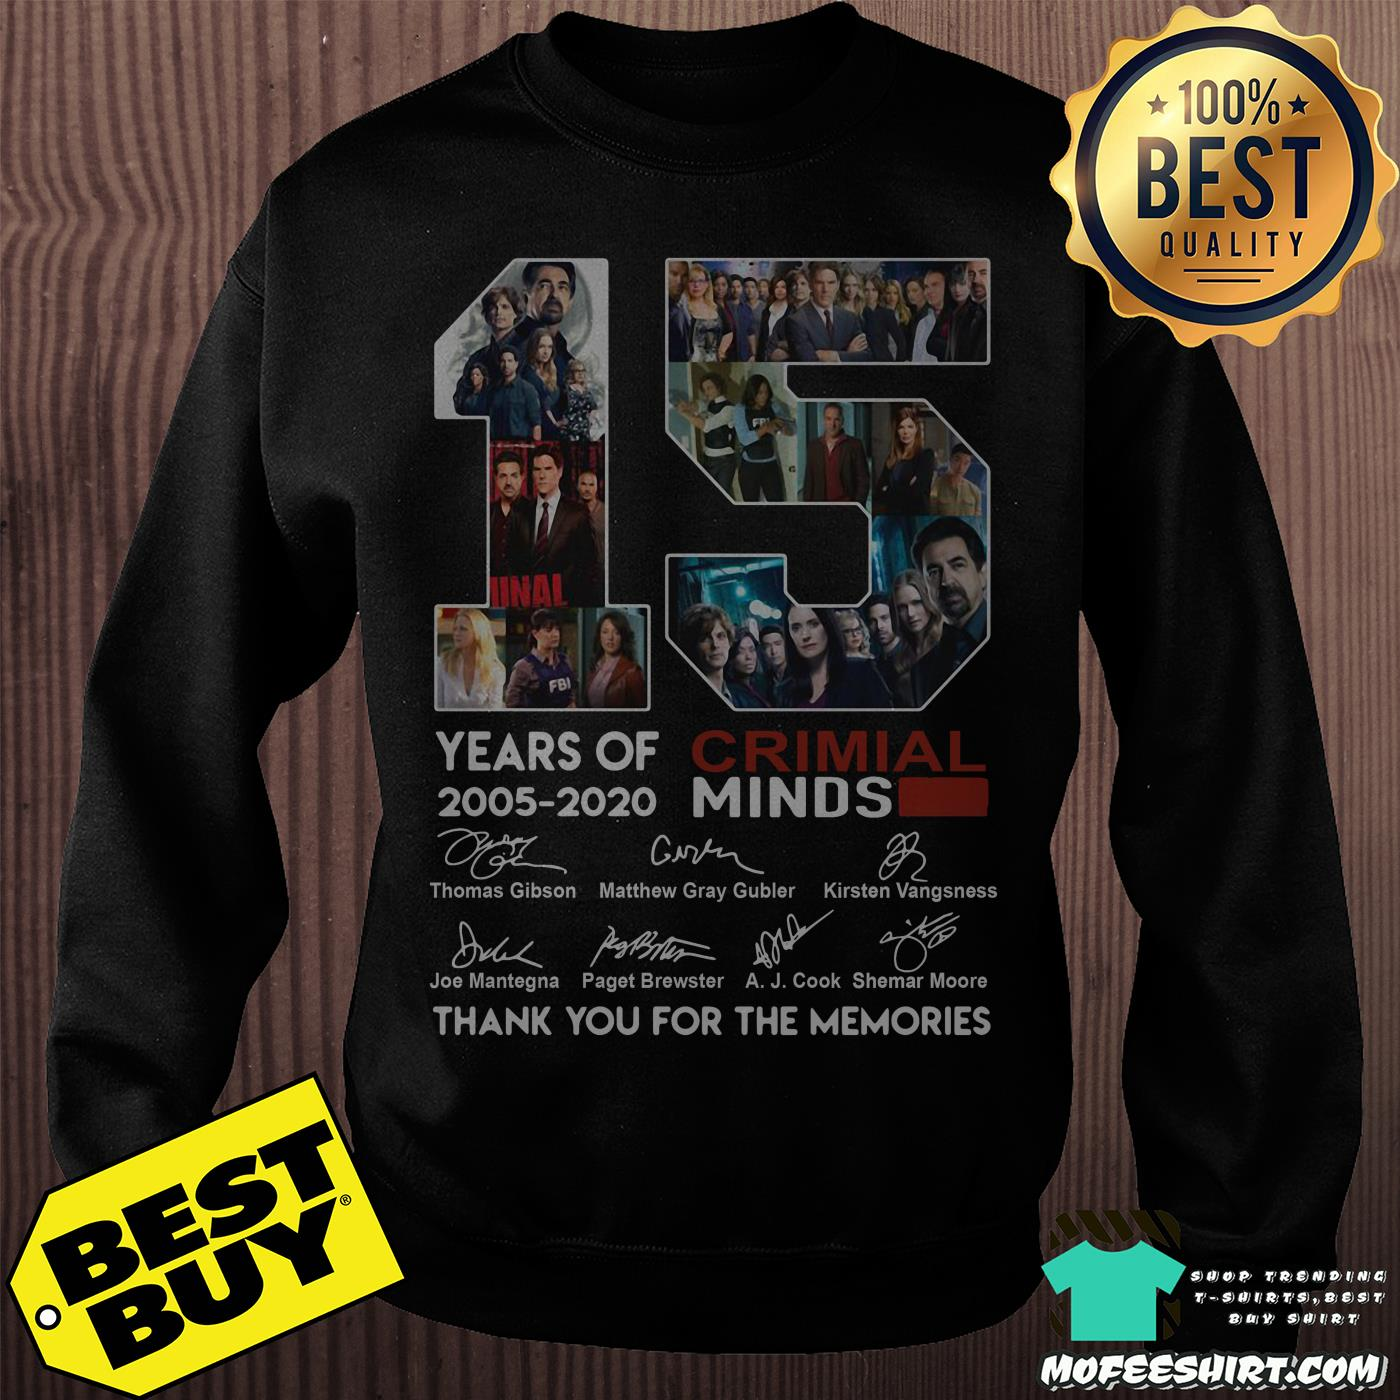 15 years of criminal minds 2005 2020 thank you for the memories sweatshirt - 15 years of Criminal Minds 2005-2020 thank you for the memories signature shirt